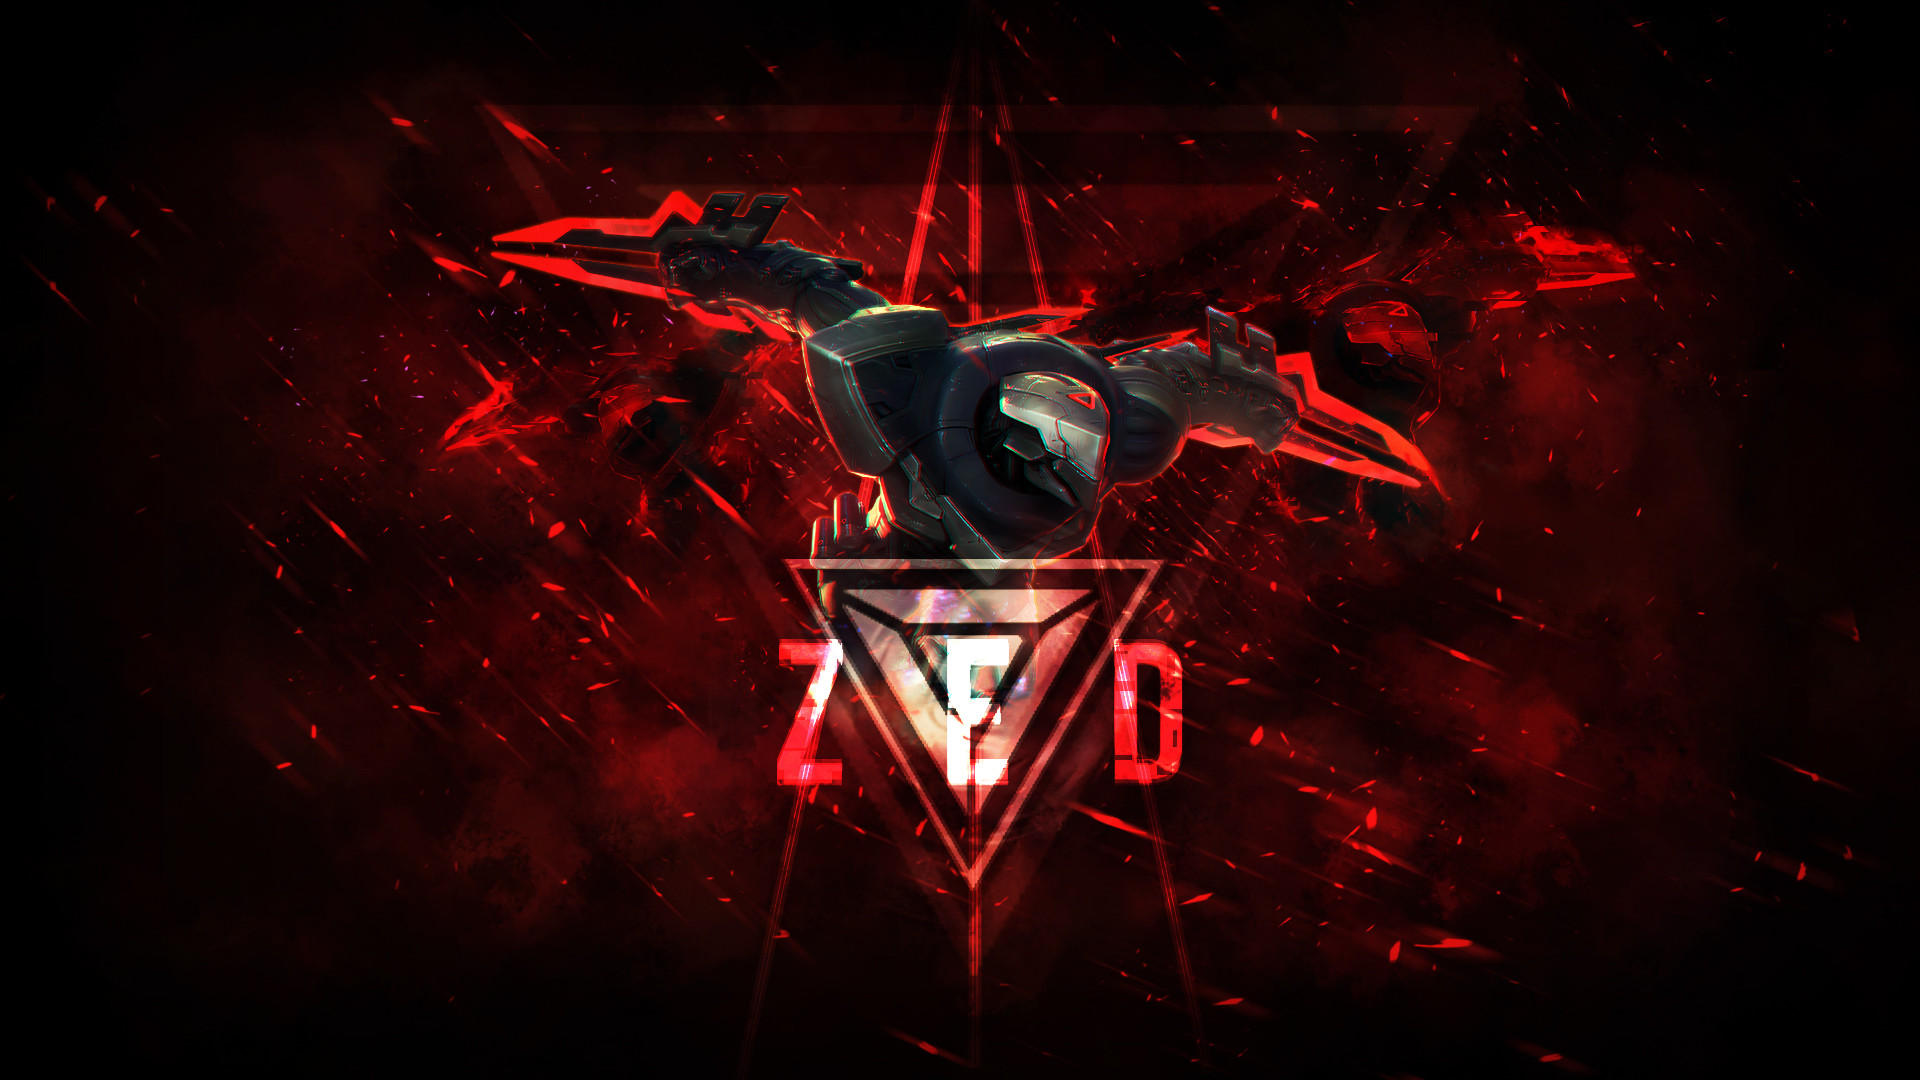 Res: 1920x1080, Project Zed Wallpaper by xXDeviousPixelXx Project Zed Wallpaper by  xXDeviousPixelXx